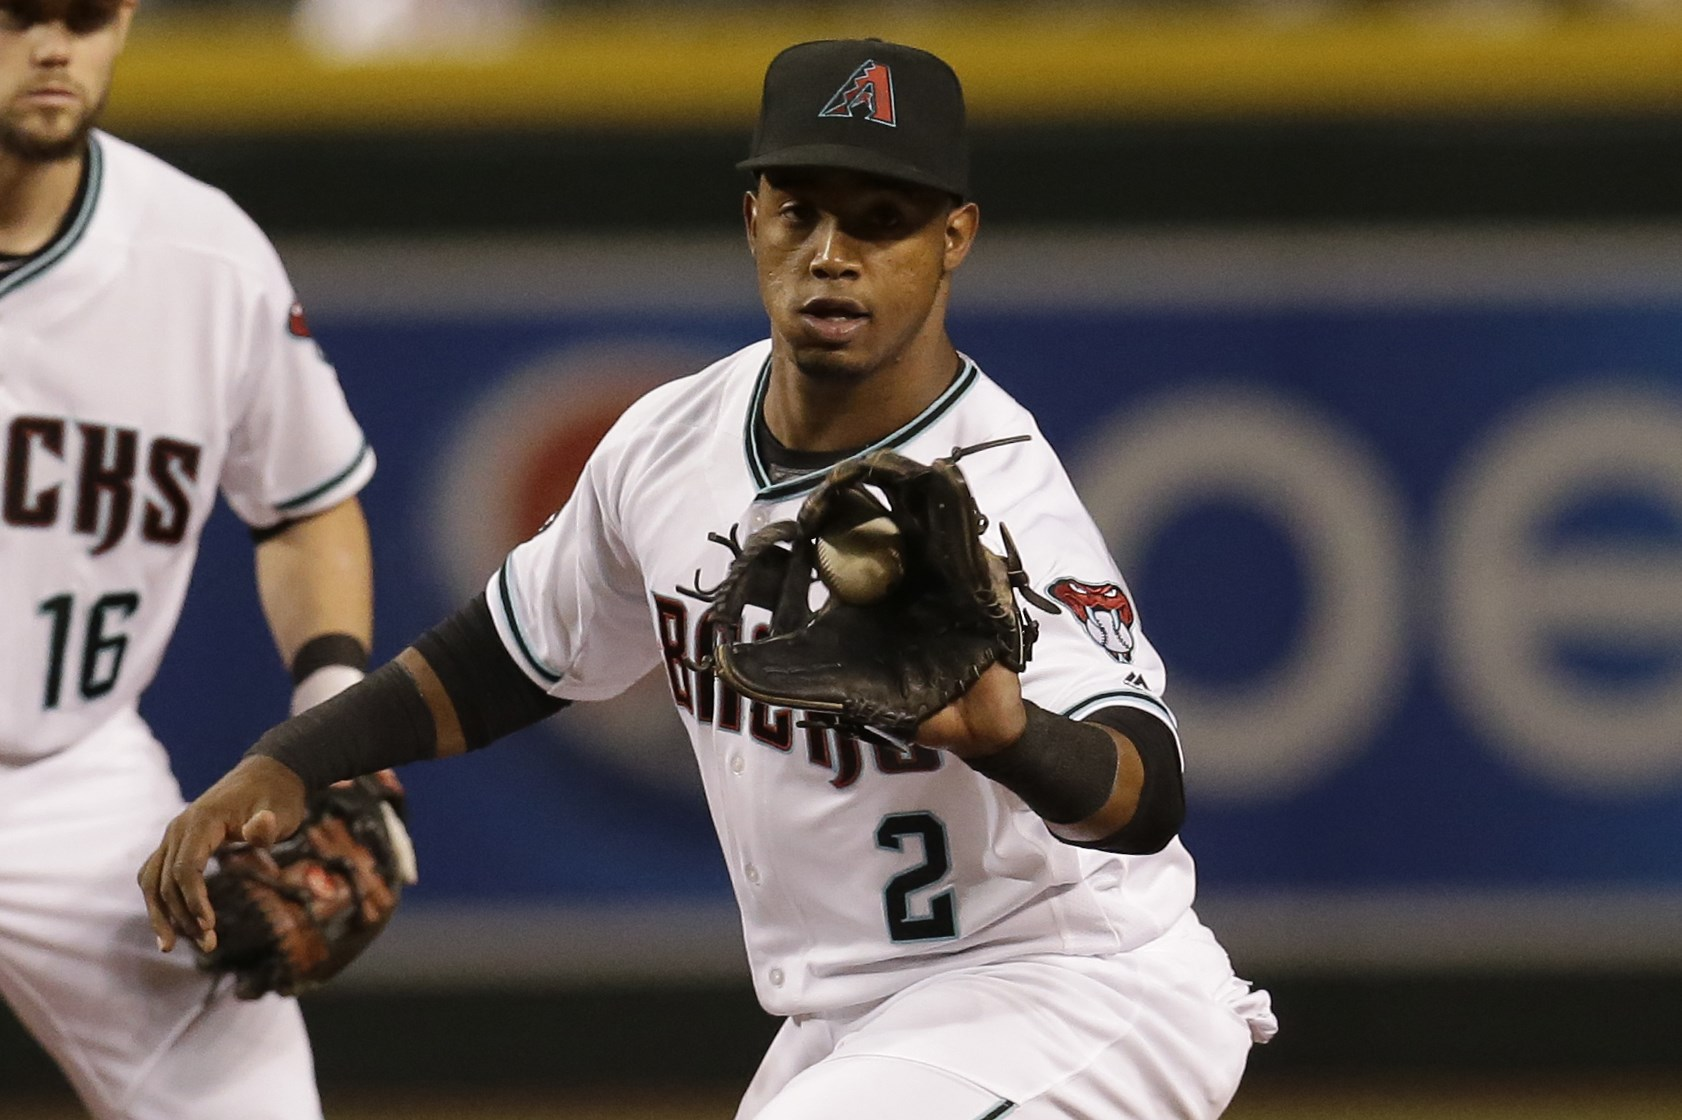 Arizona Diamondbacks second baseman Jean Segura (2) in the first inning during a baseball game against the San Diego Padres, Friday, Sept. 30, 2016, in Phoenix. (AP Photo/Rick Scuteri)